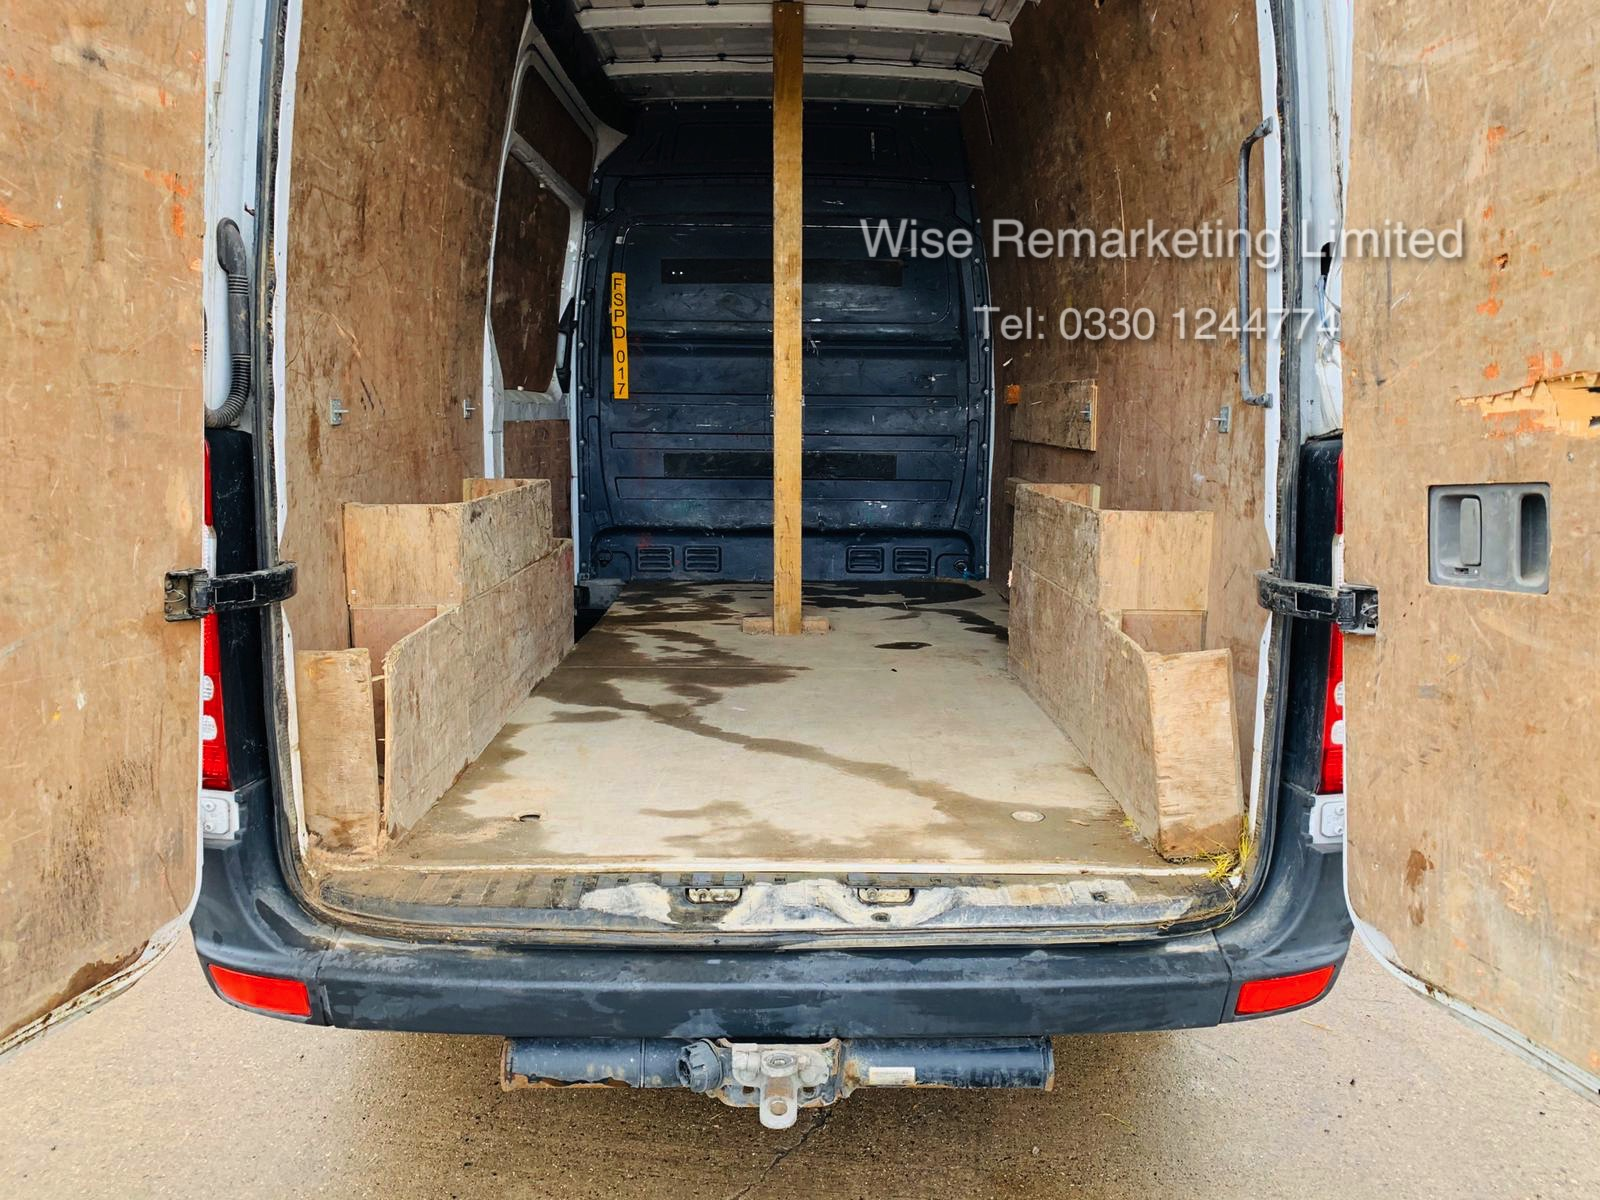 Mercedes Sprinter 313 2.1 CDI - 2014 14 Reg - 6 Speed - Ply Lined - Company Owned - Image 10 of 18